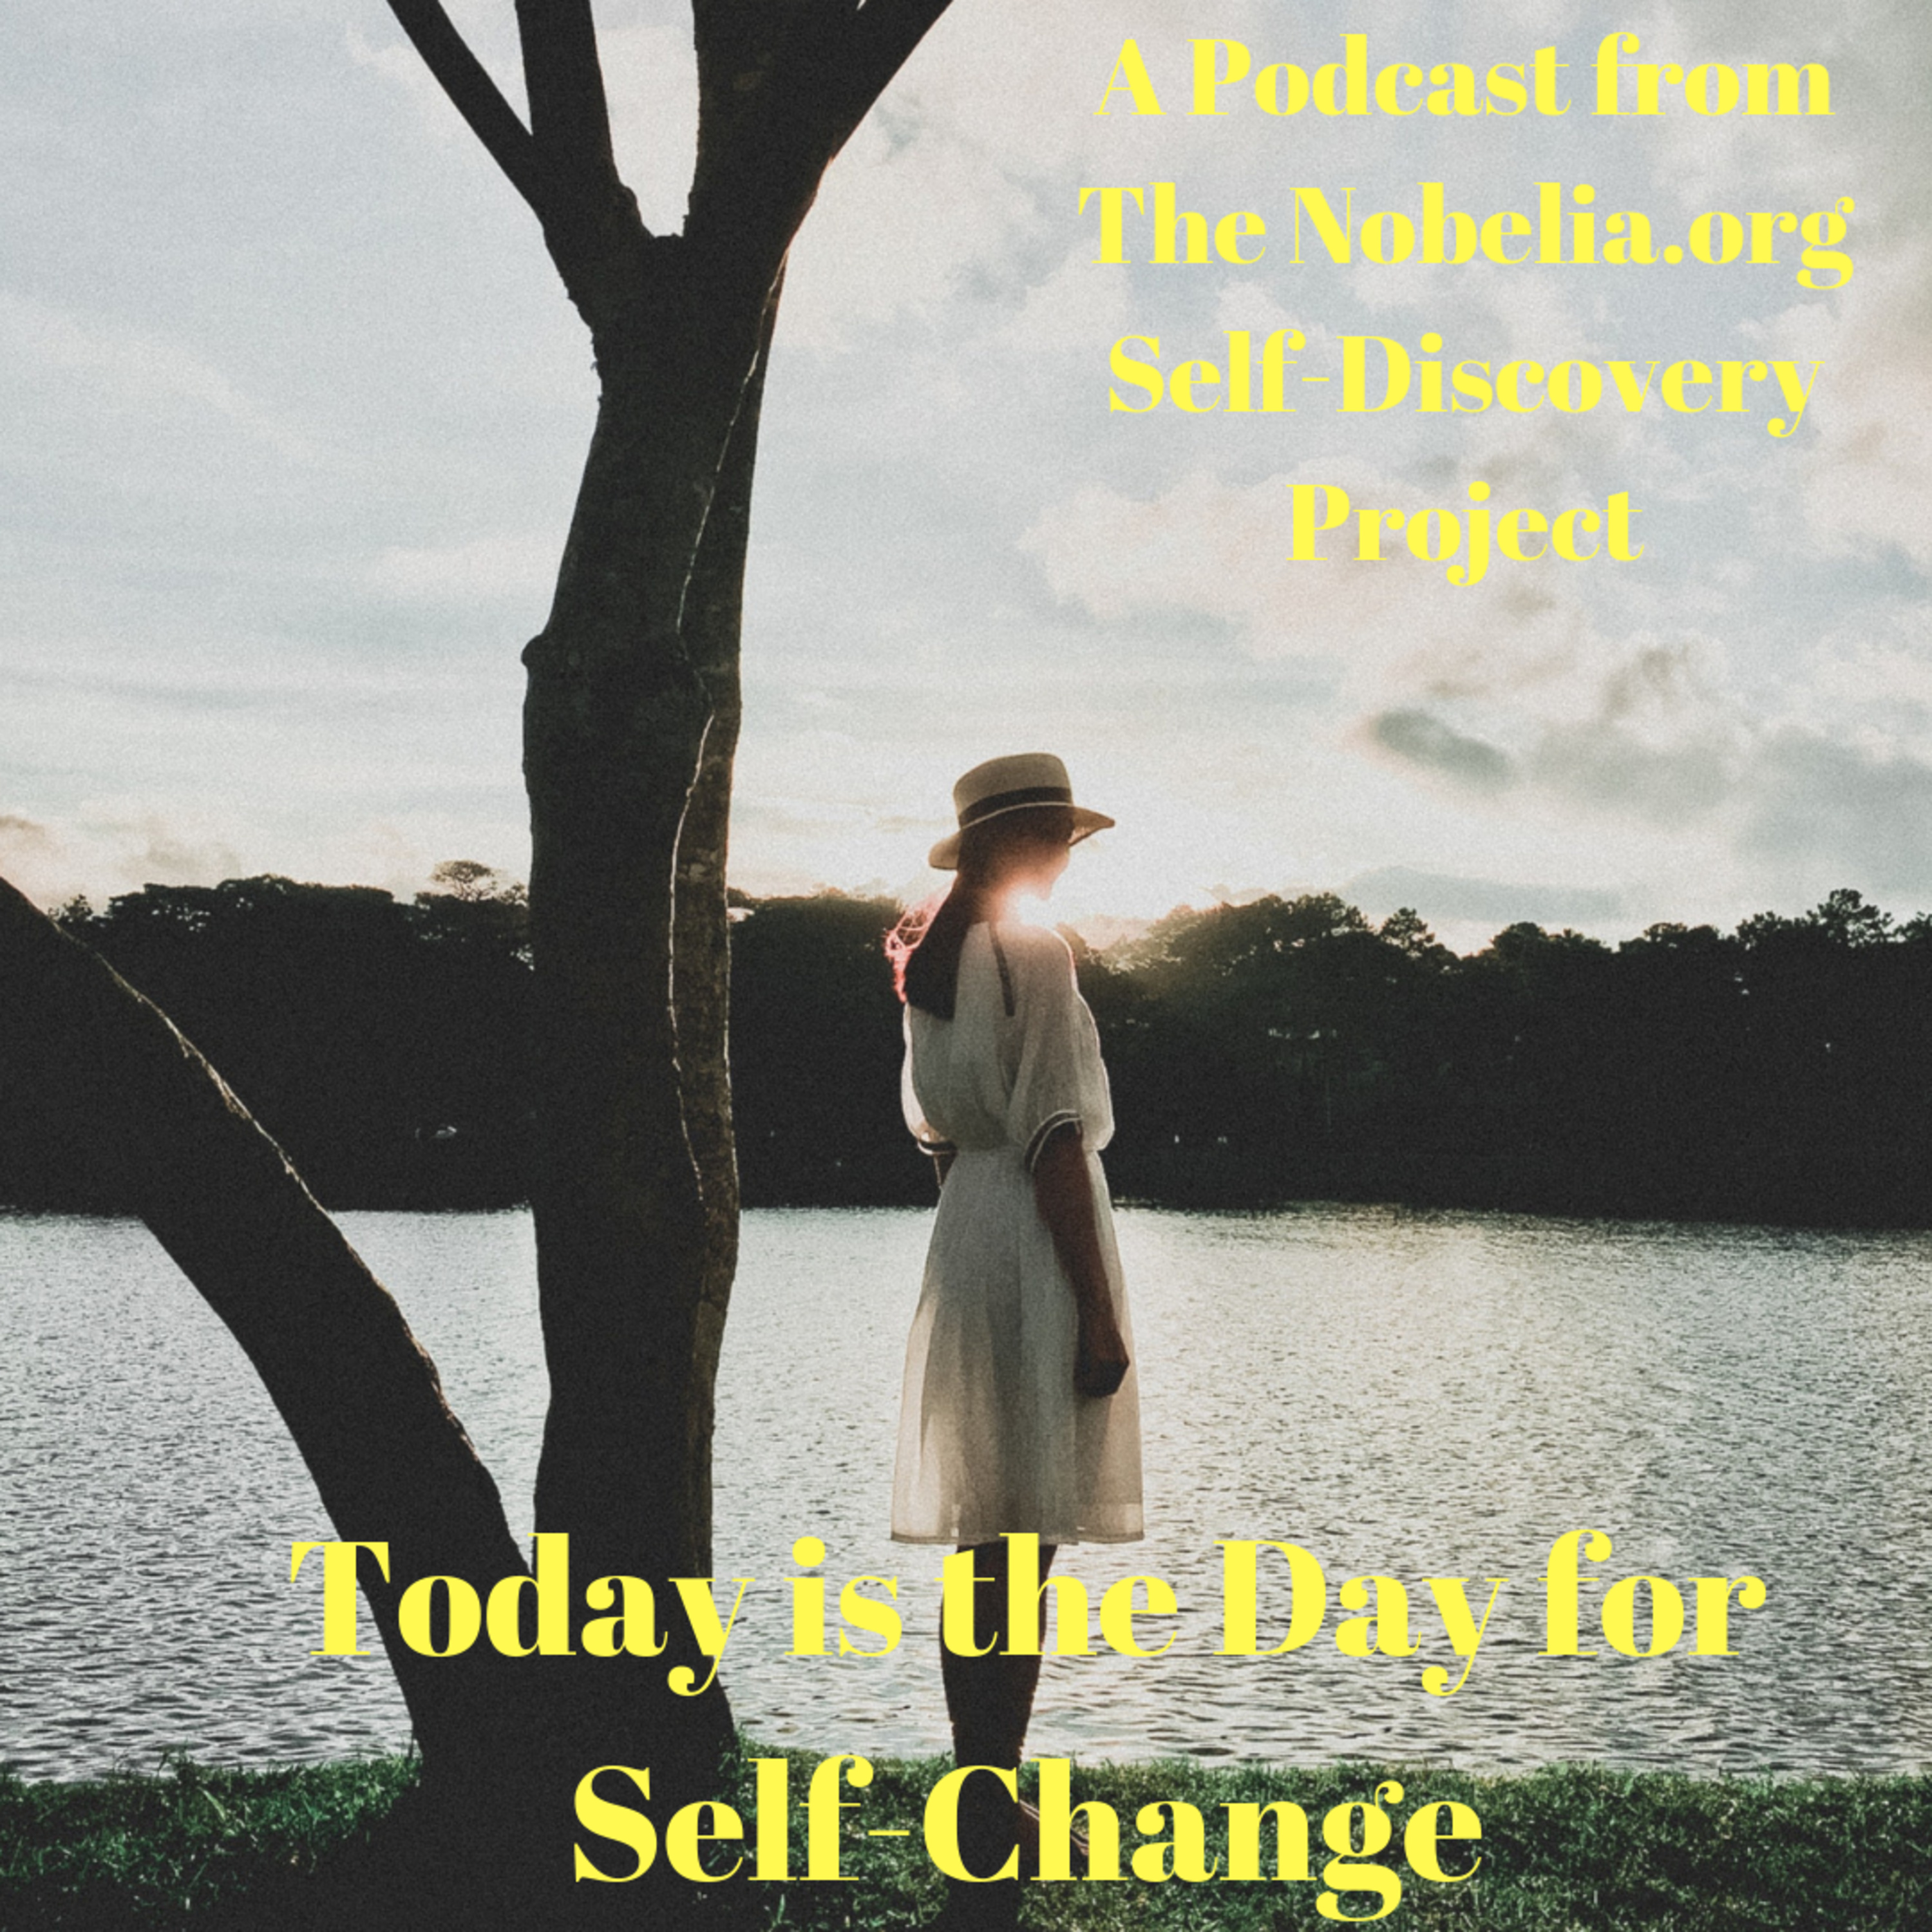 Today is the Day for Self-Change